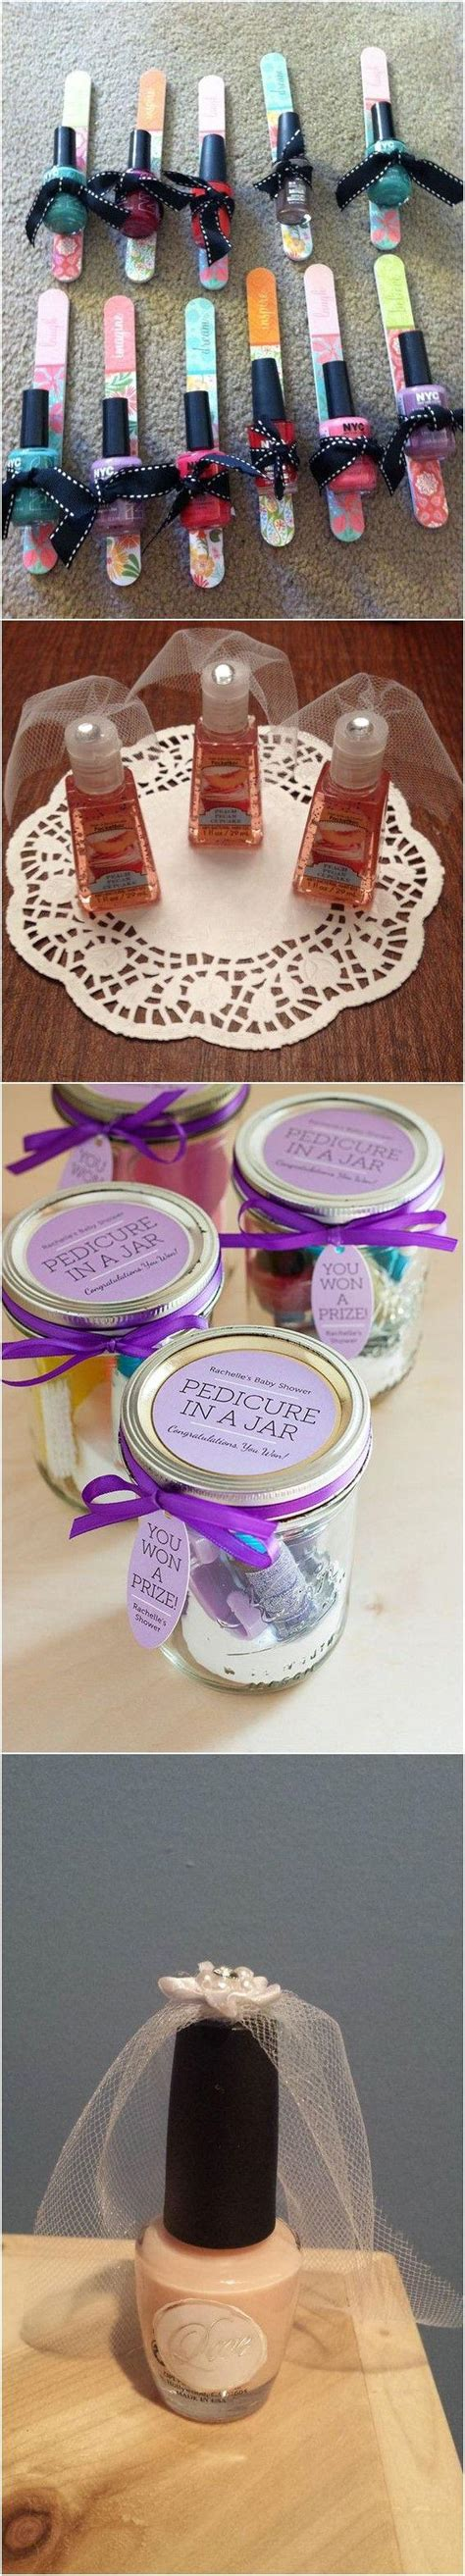 wedding guest favors diy 3 20 bridal shower favor gifts your guests will like